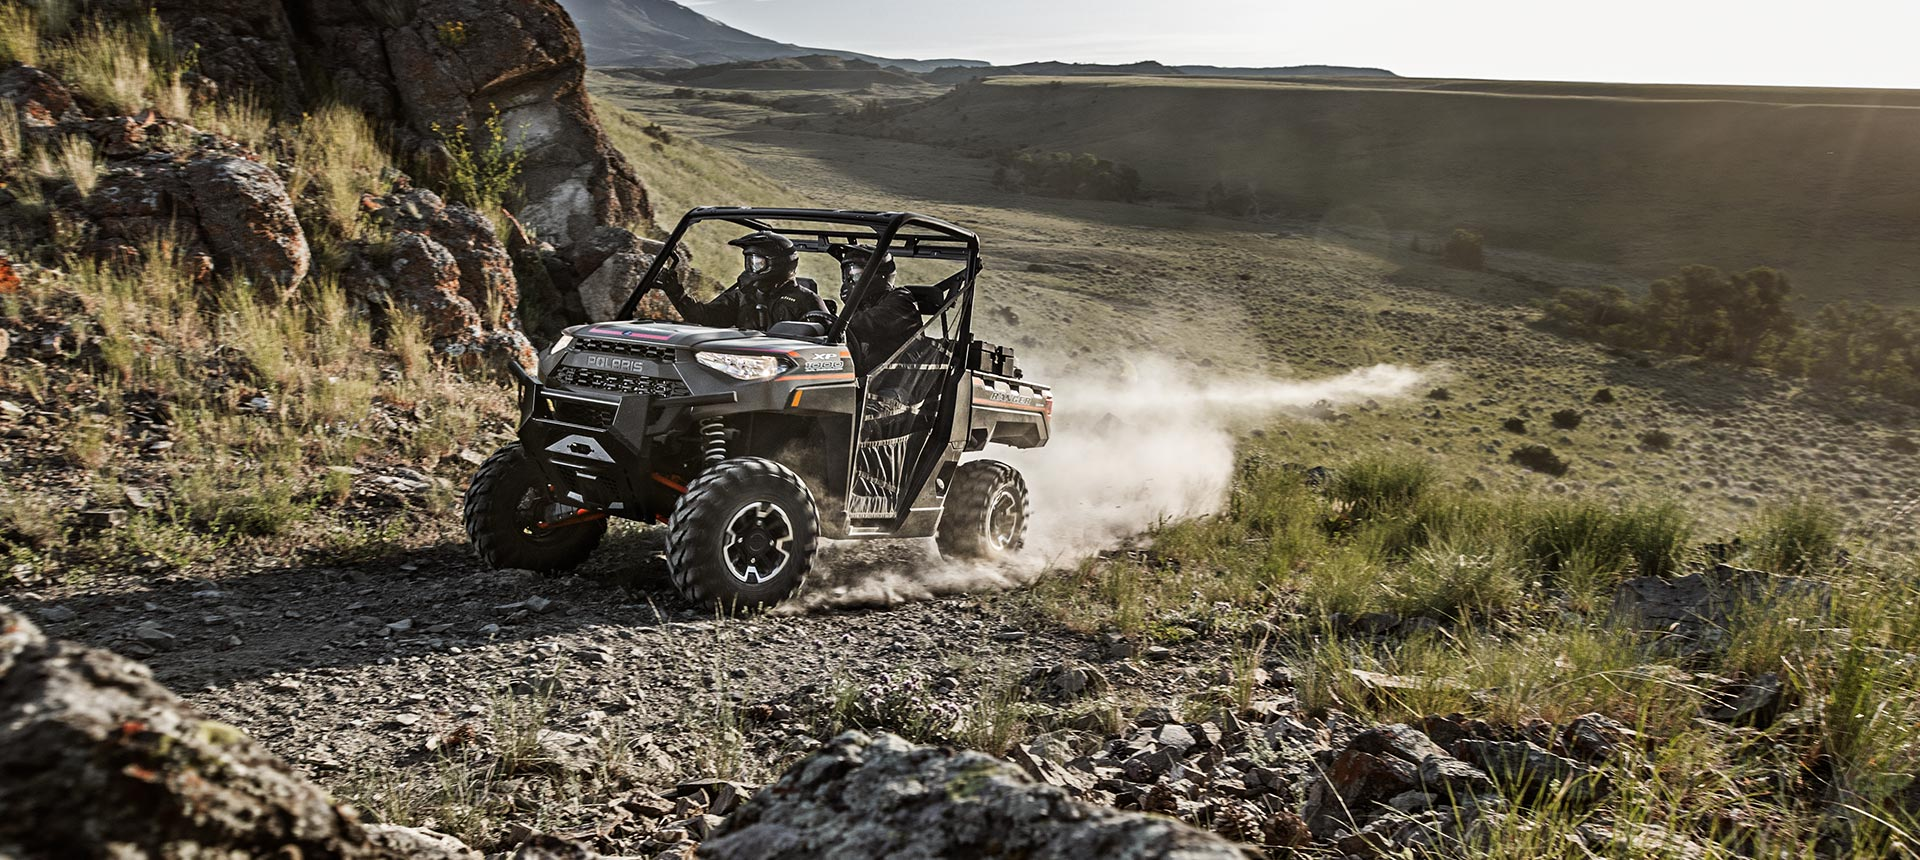 2019 Polaris Ranger XP 1000 EPS in Logan, Utah - Photo 2